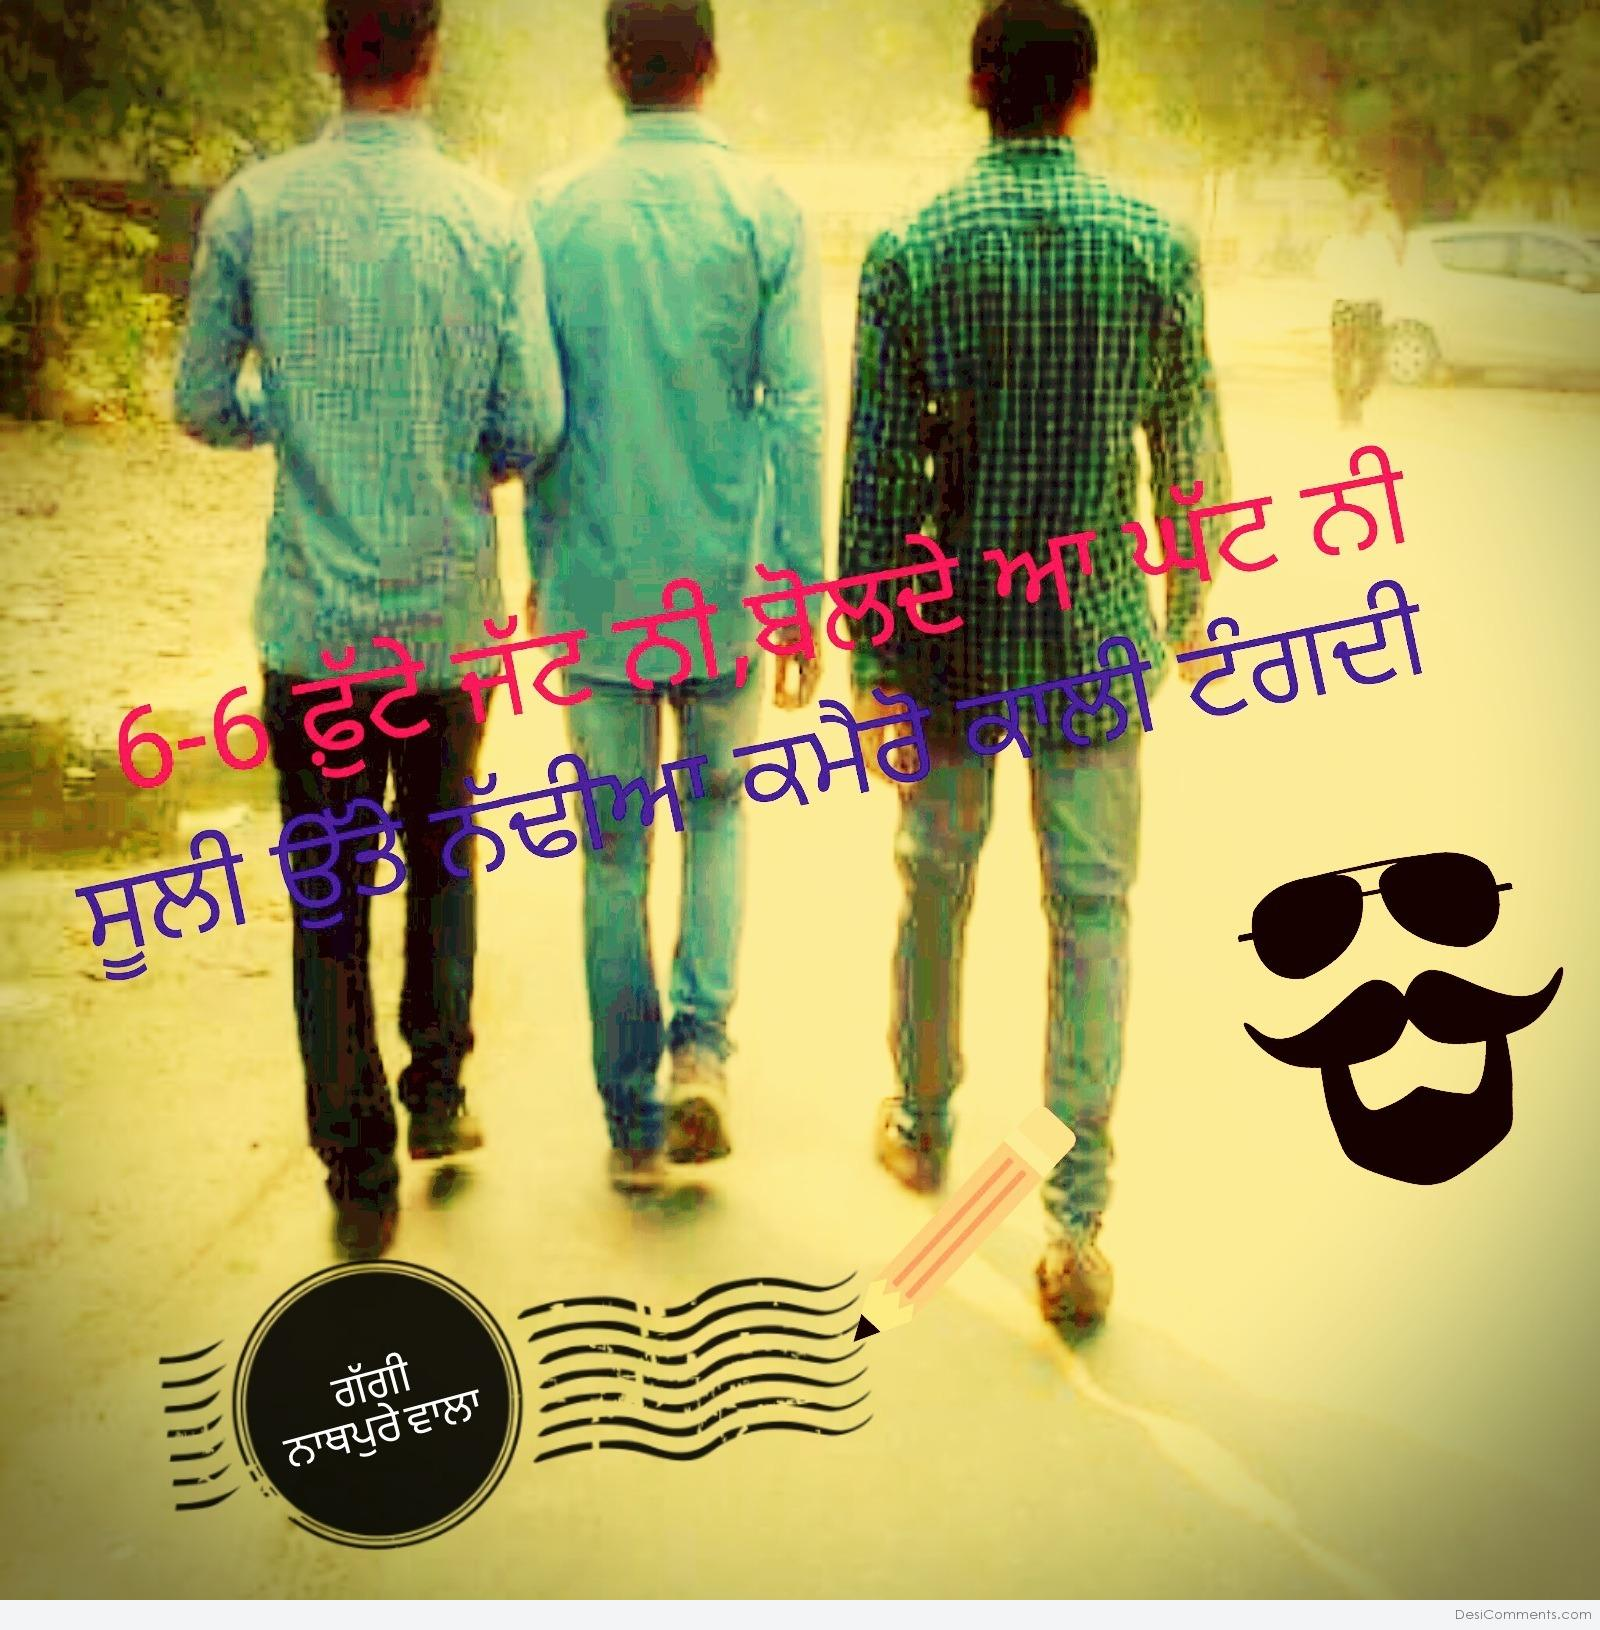 Wallpaper download jat - 6 6 Foote Jatt Ni